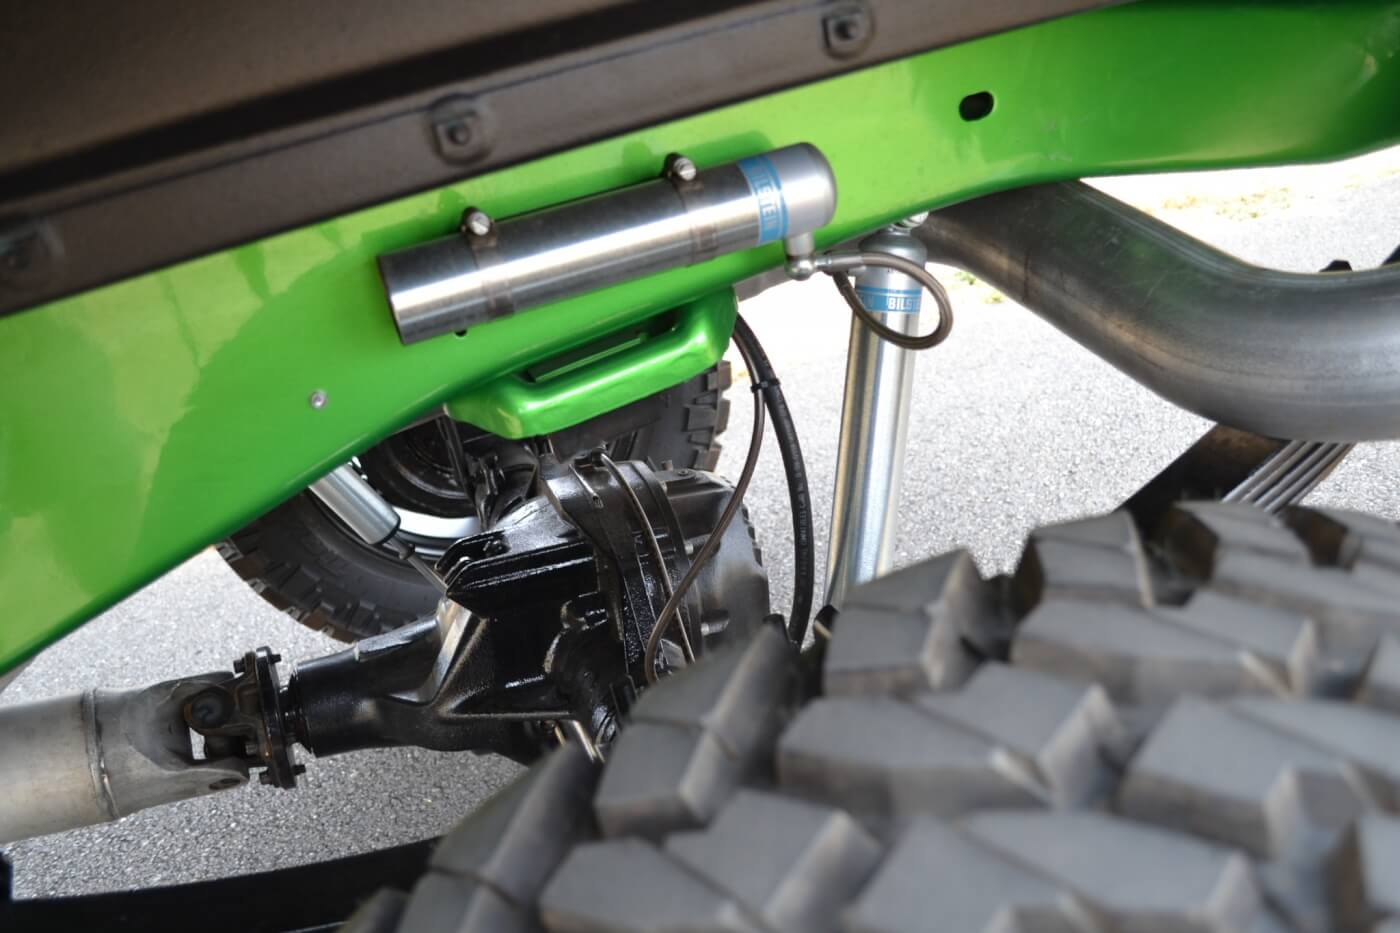 Bennett went with a Ford axle for the back of the truck too, which is suspended from the Synergy Green frame with a set of Superlift leaf springs and Bilstein 5100 reservoir shocks.